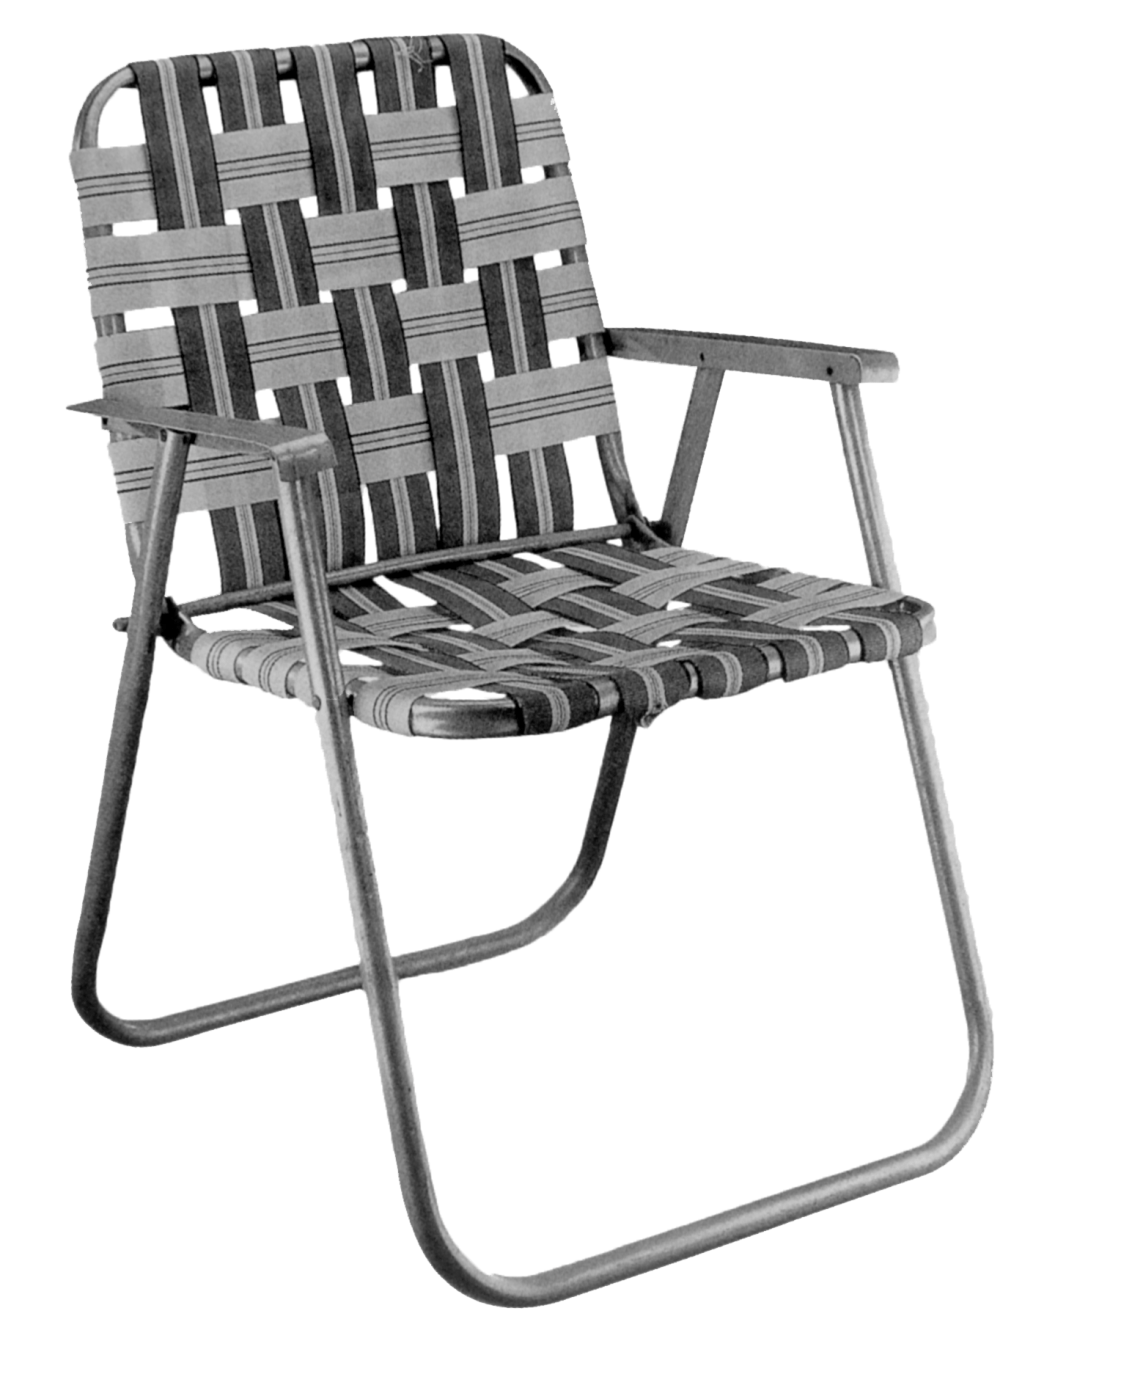 webbing for aluminum folding chairs tied to chair max bill ulmer hocker 1954 cadillac